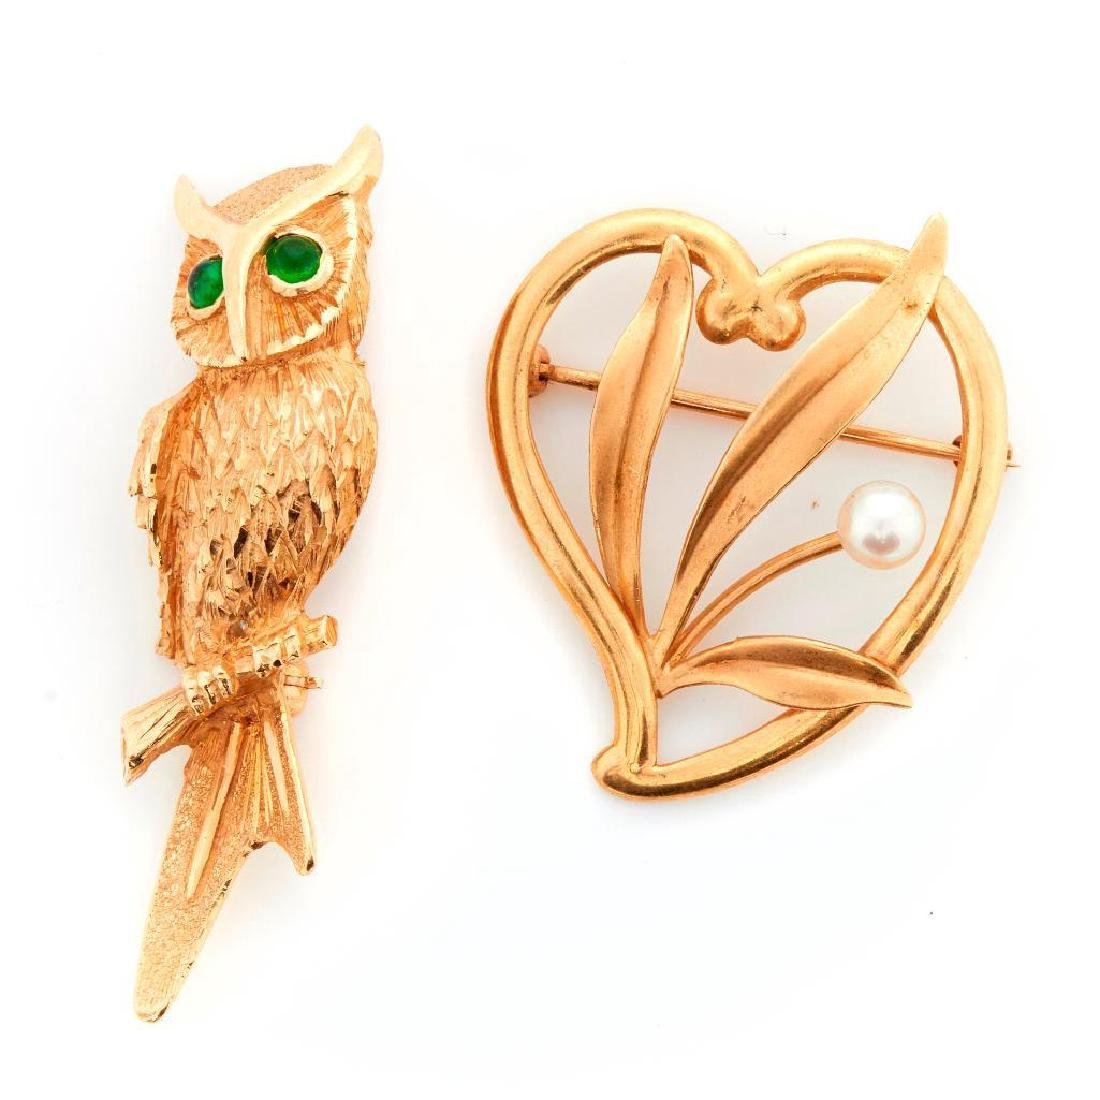 Two 14k gold brooches